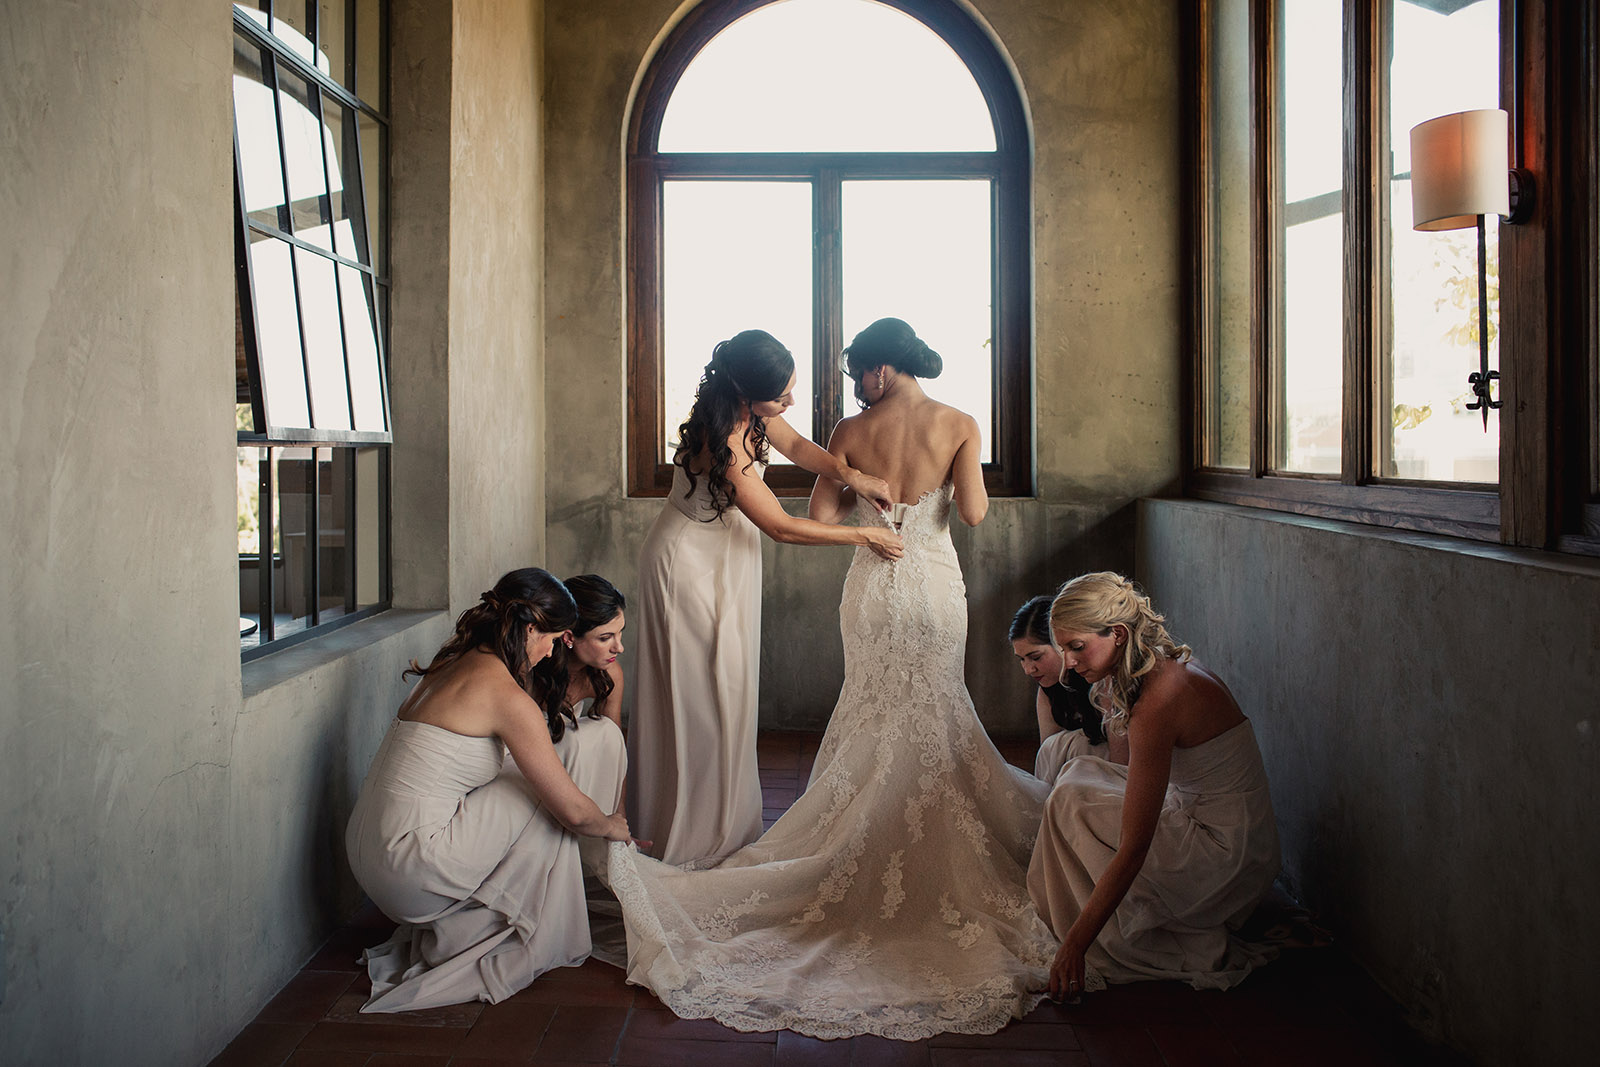 How did I build a wedding photography business that simultaneously emphasizes photojournalism and portraits? This is how. | Click Magazine